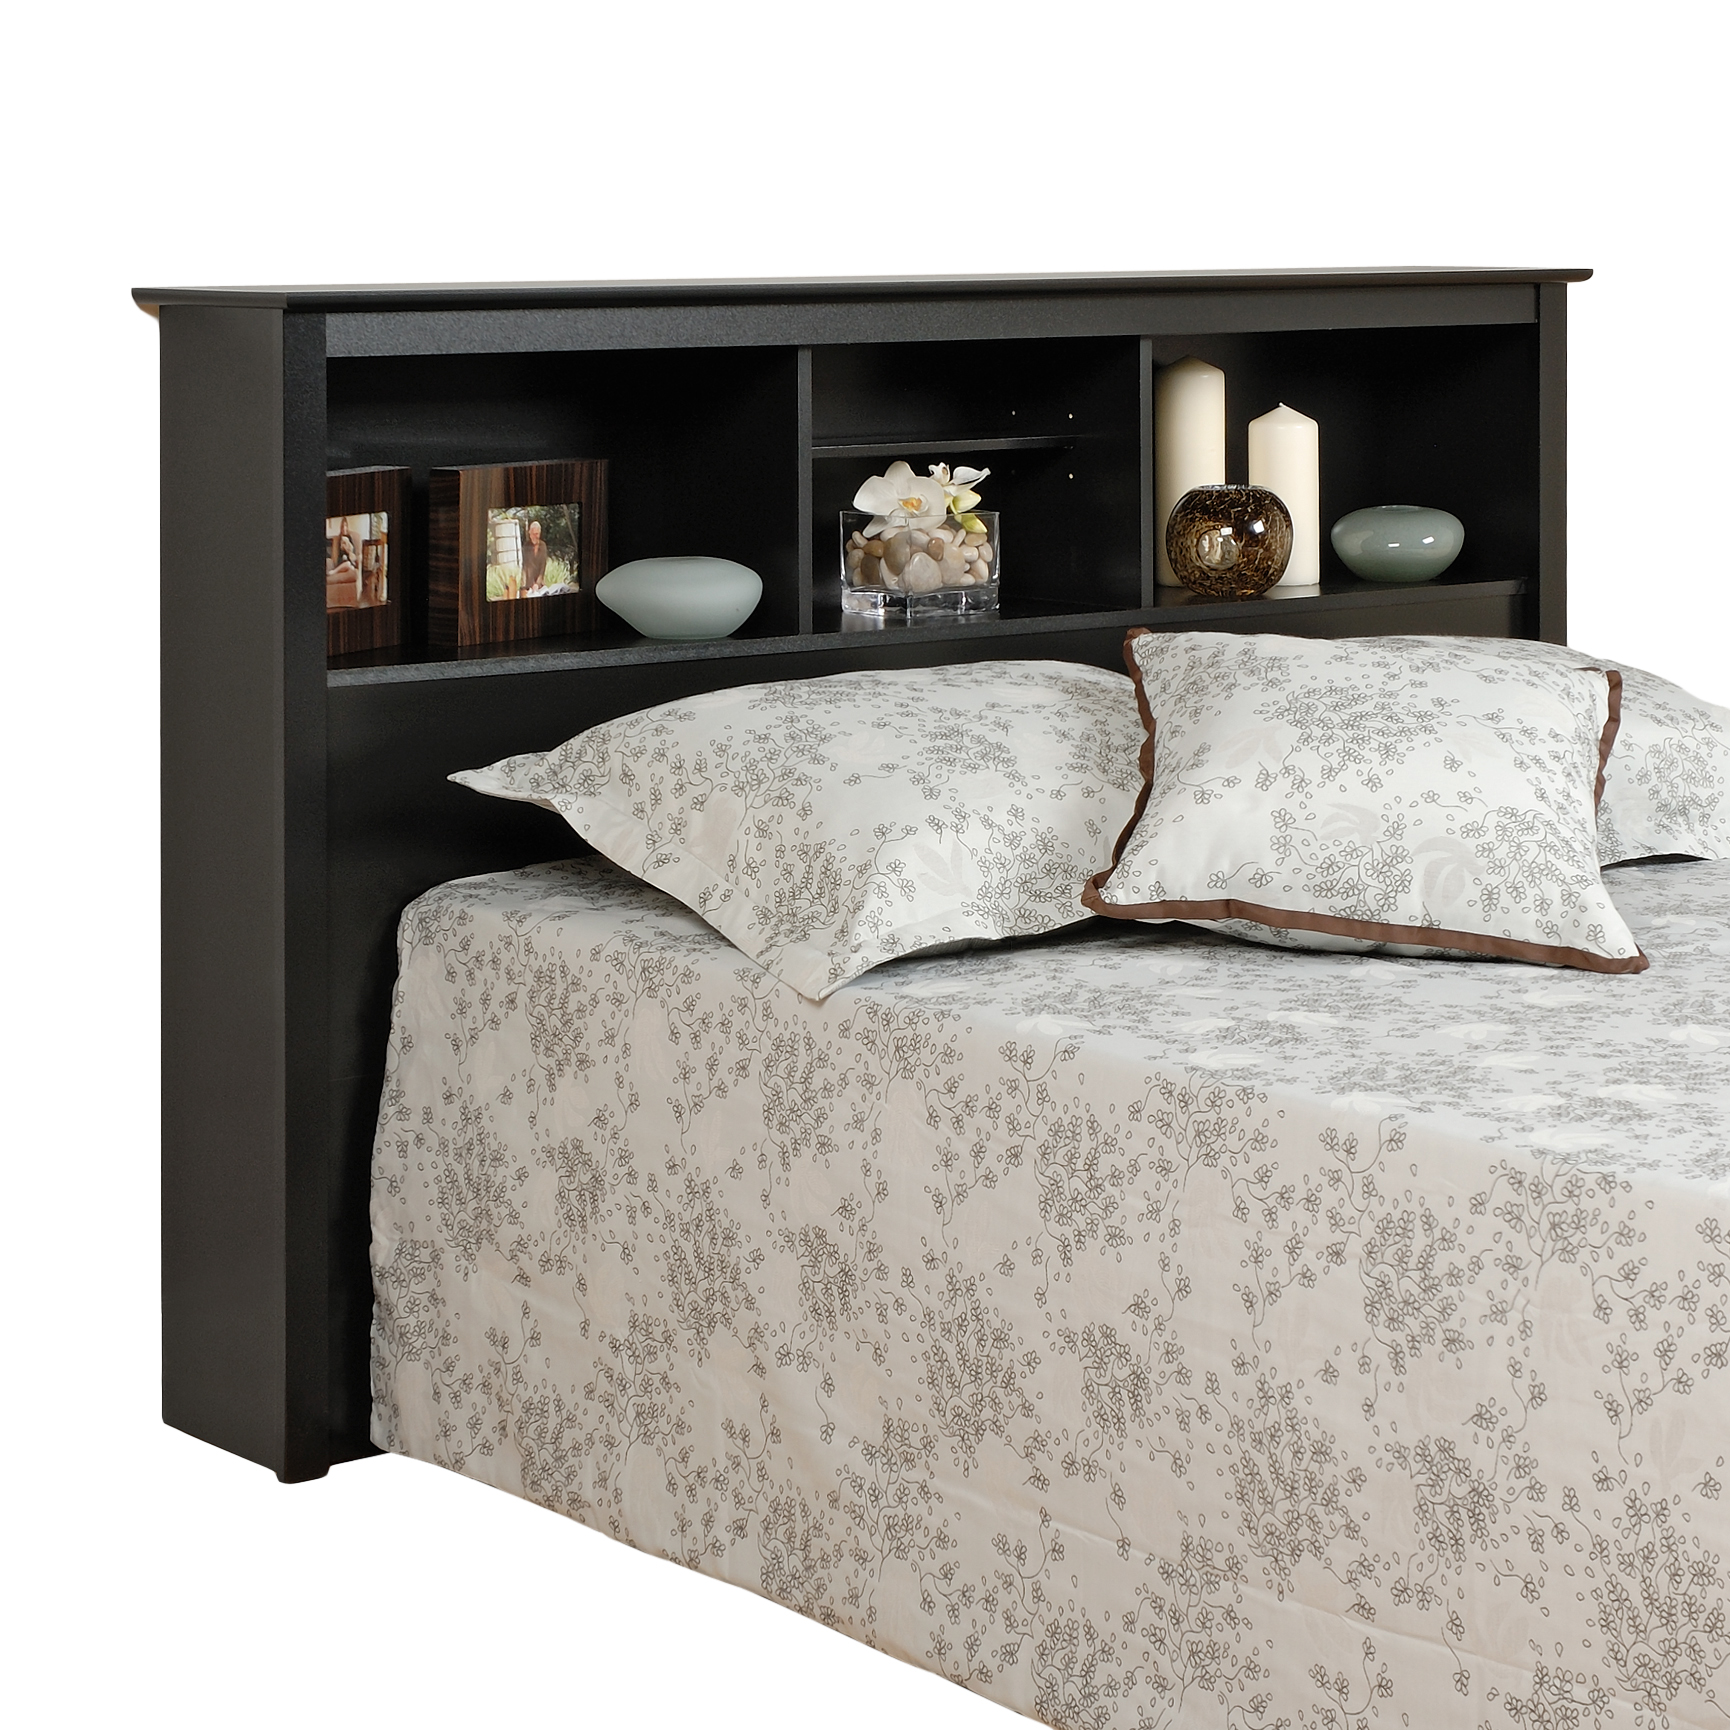 Sonoma Black Double / Queen Storage Headboard, BLACK